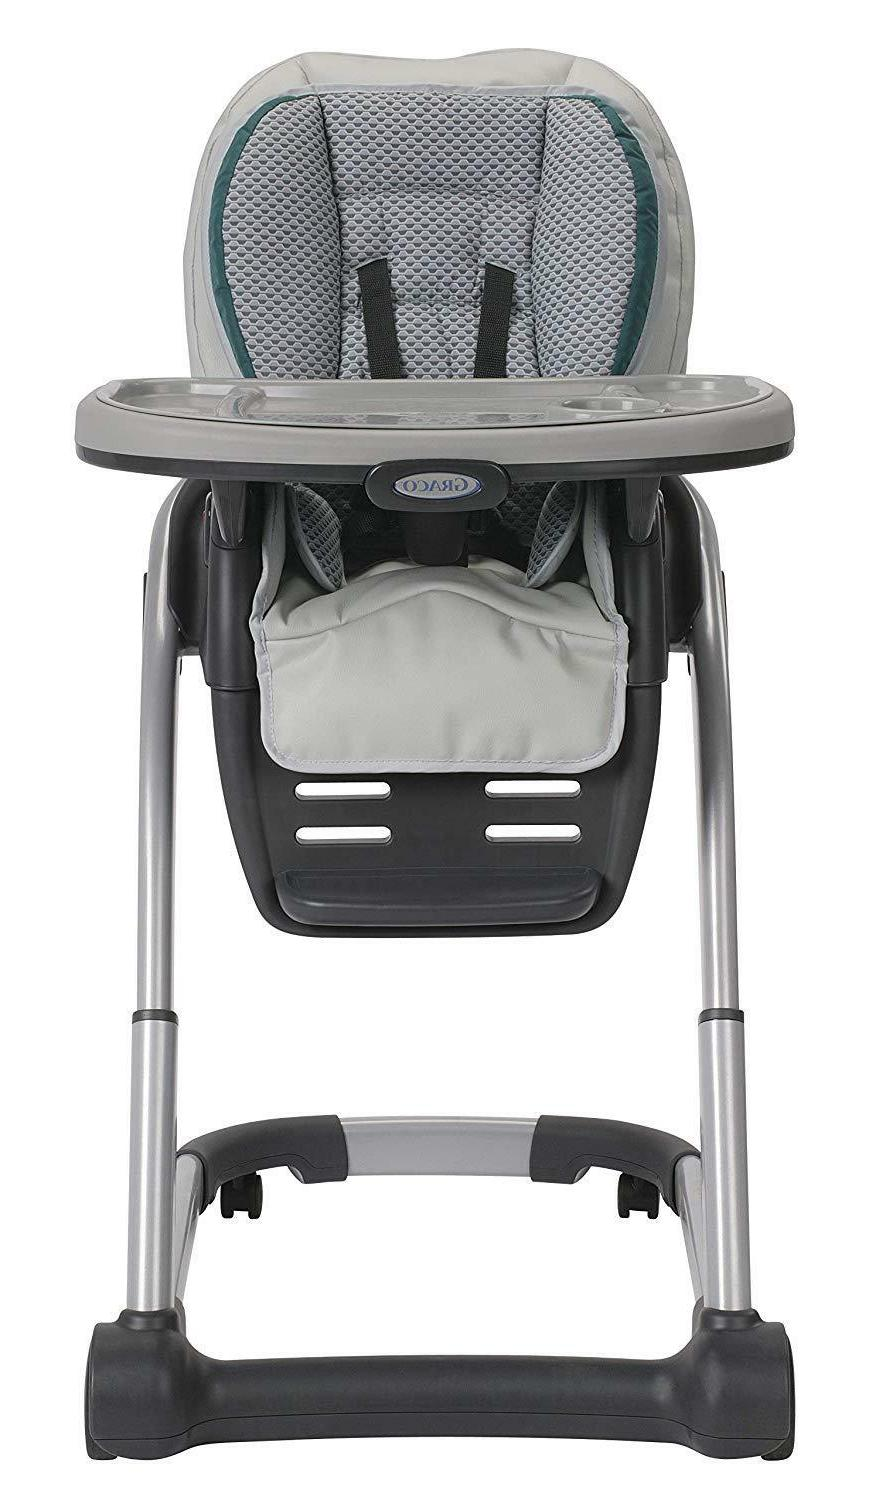 Graco 6-in-1 Highchair, Sapphire